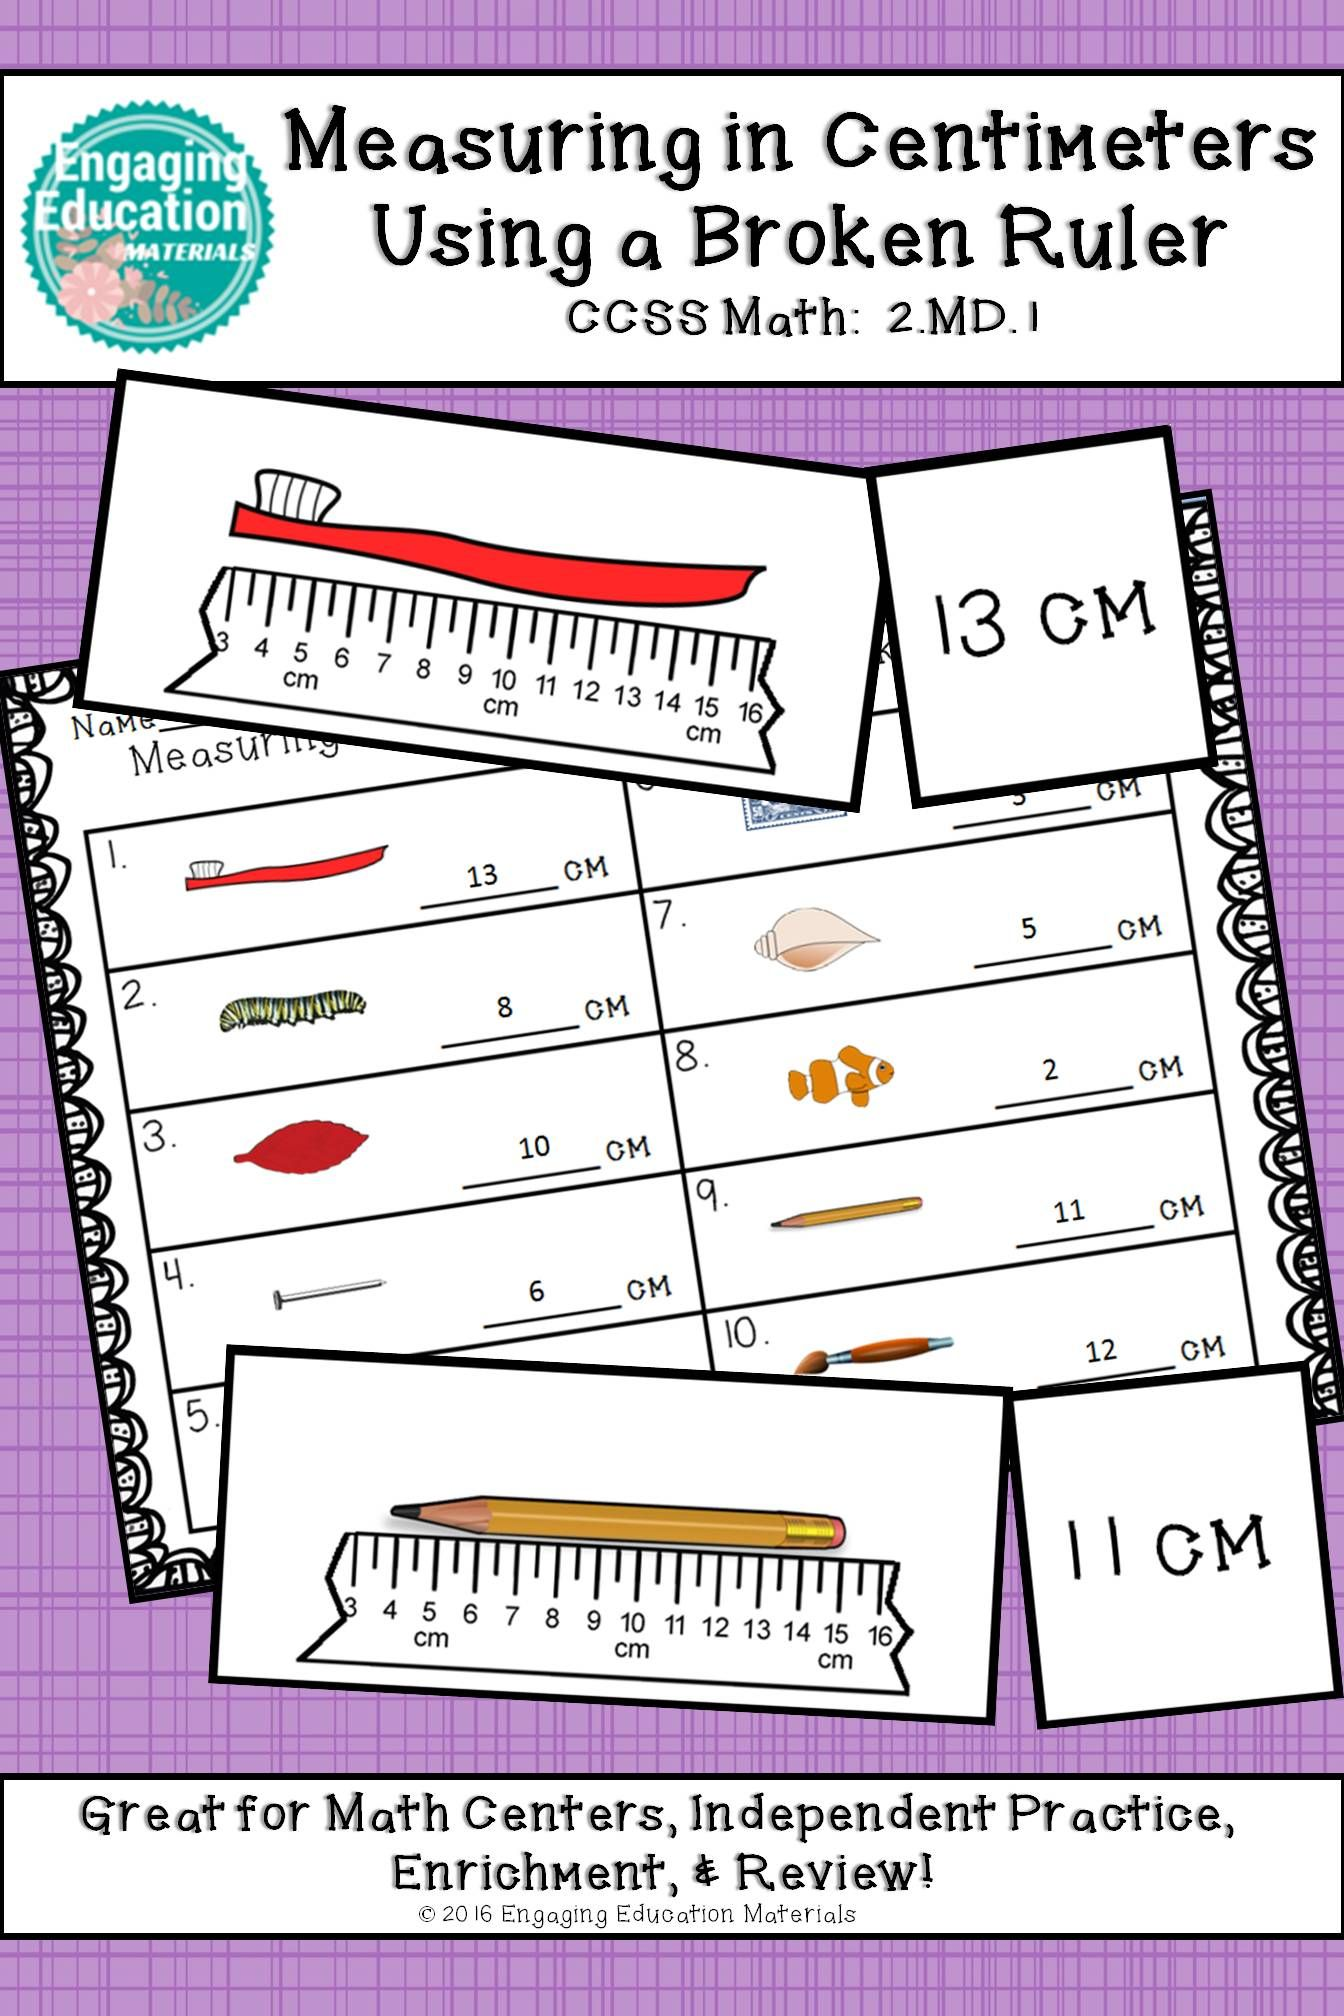 worksheet Measuring With Centimeters measuring in centimeters with a broken ruler students and ruler